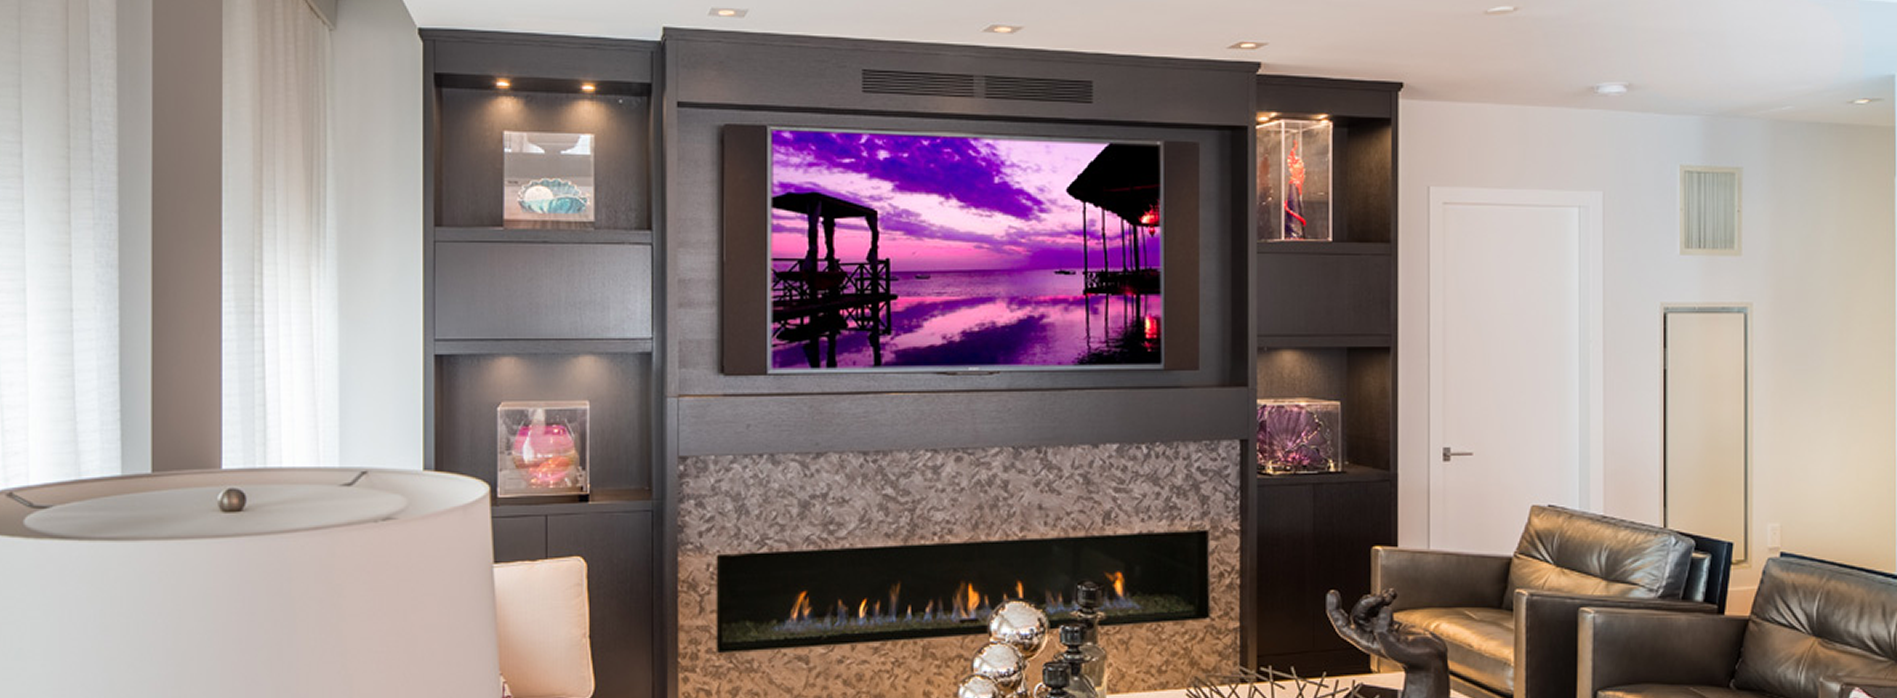 Flat Mount TV Installation NJ